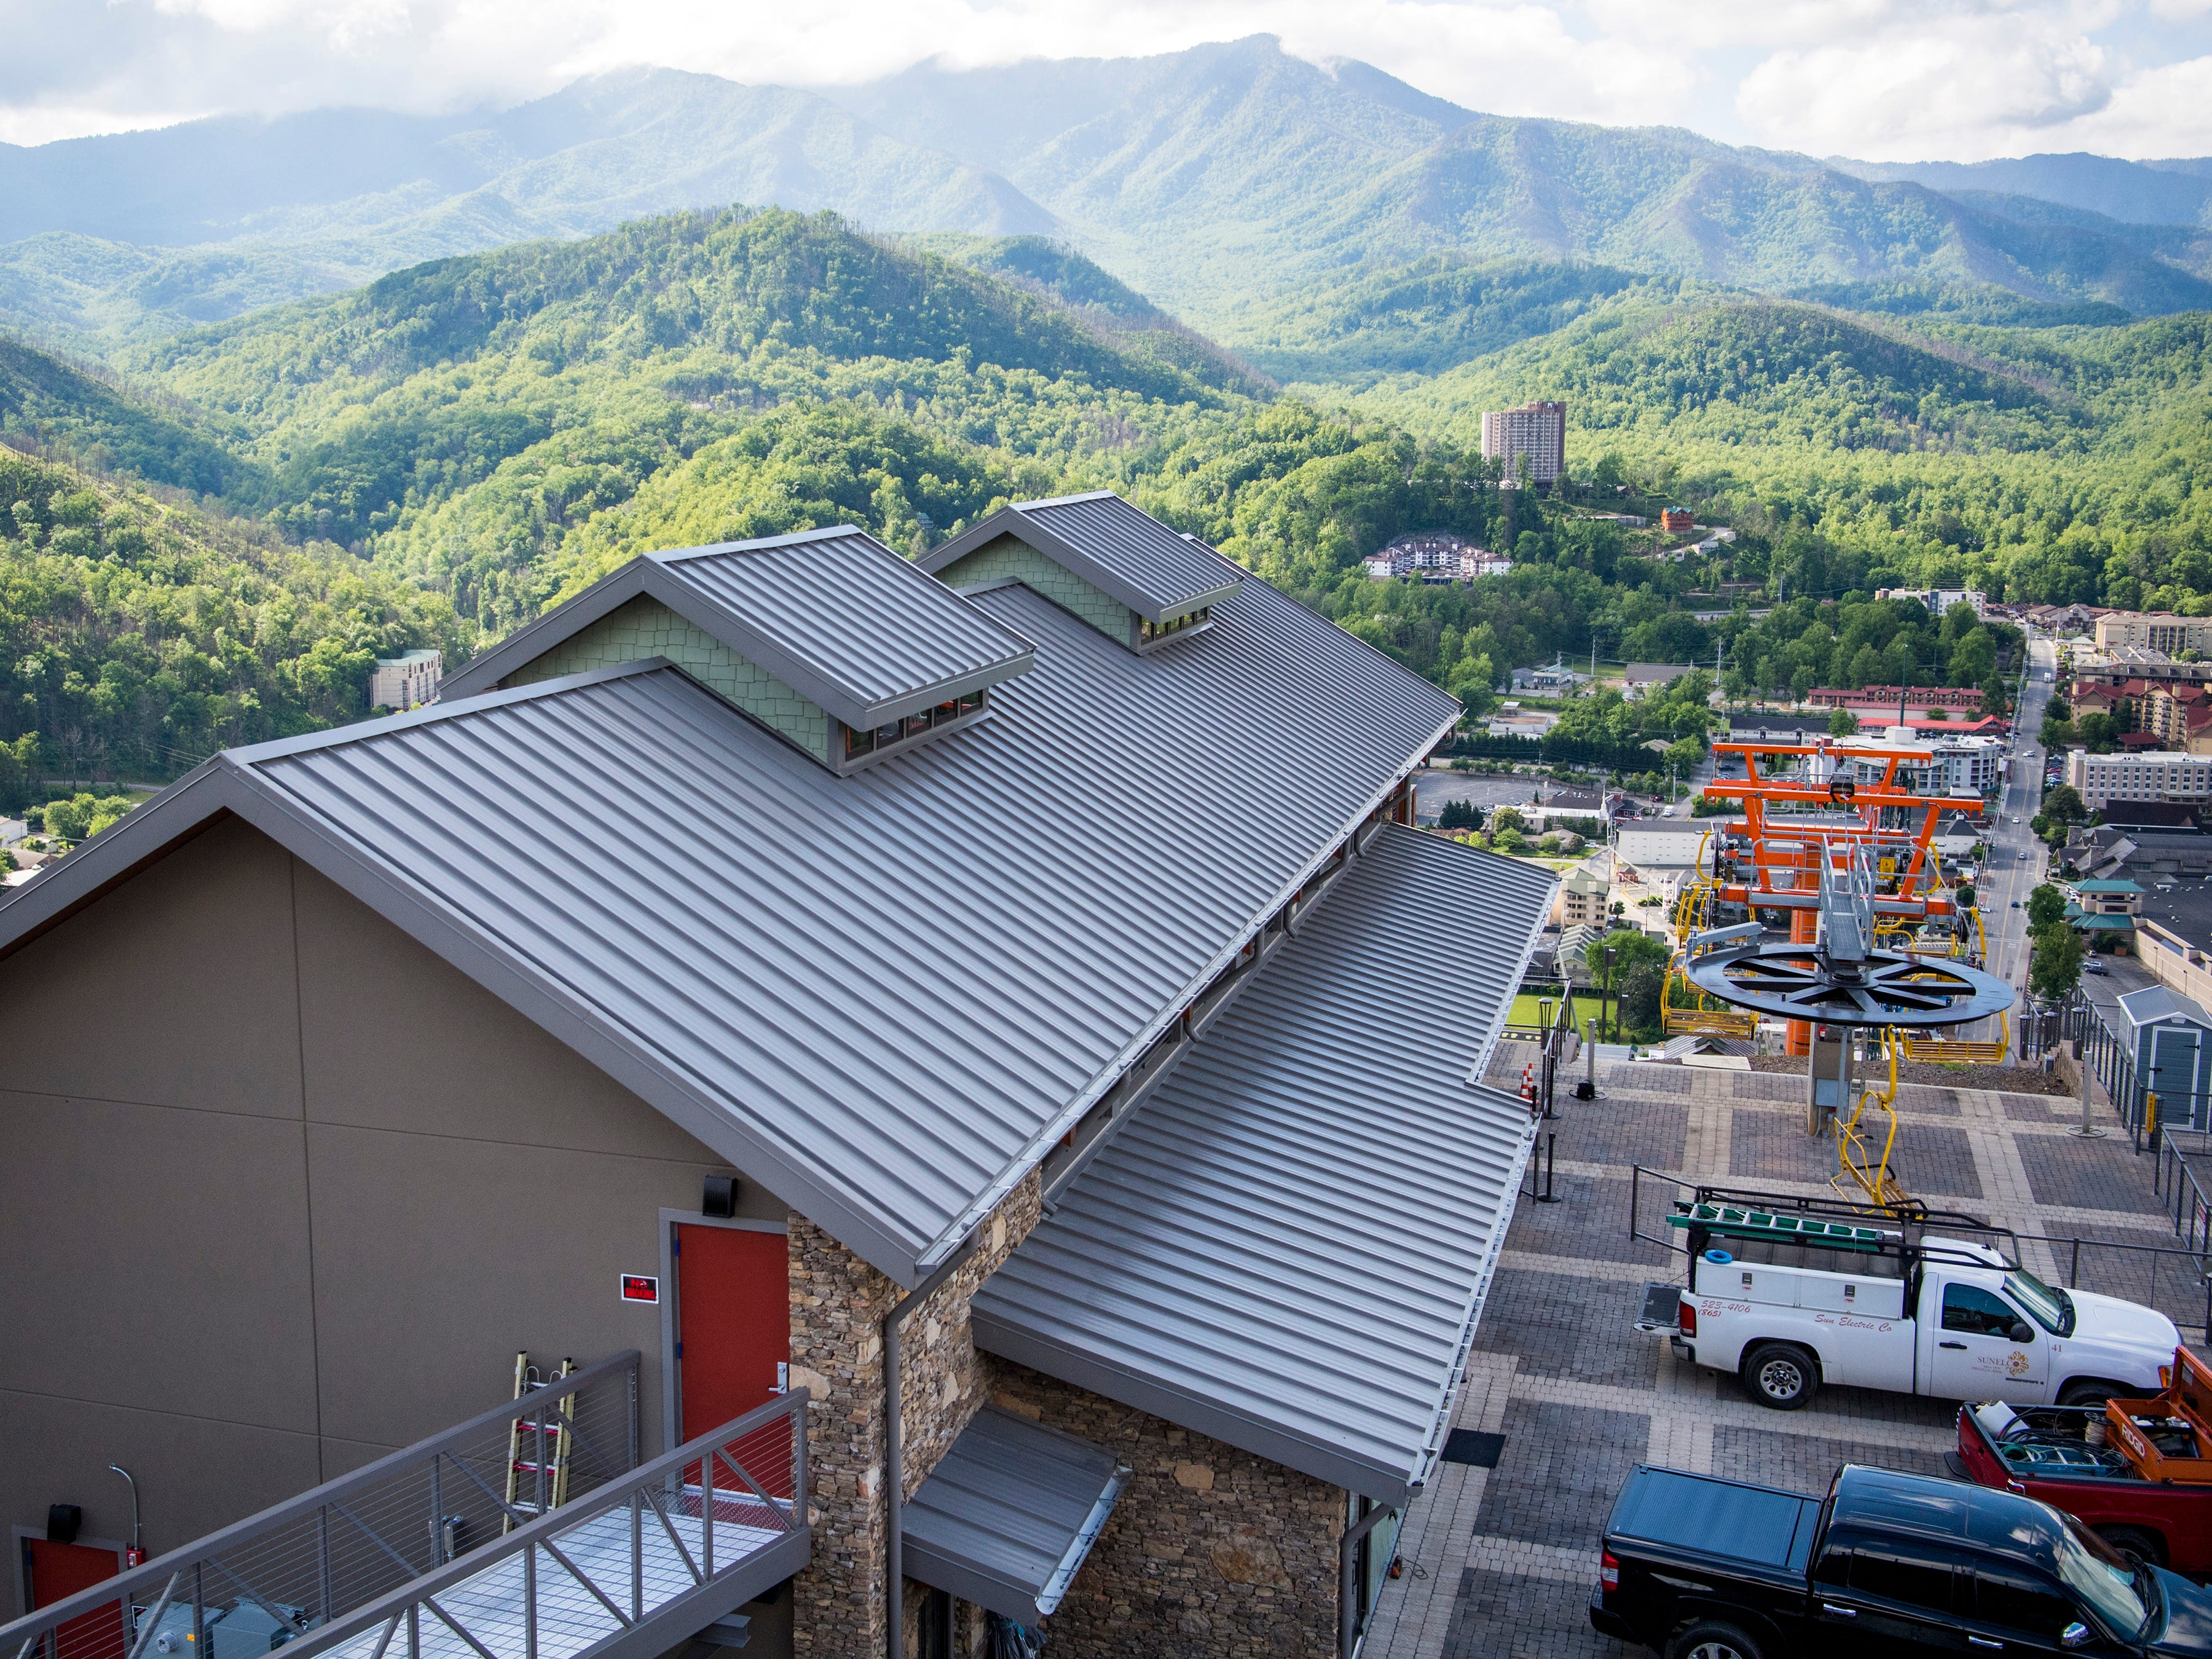 The Gatlinburg SkyLift Park, pictured on Tuesday, May 14, 2019, offers panoramic views of Gatlinburg and the Smoky Mountains.